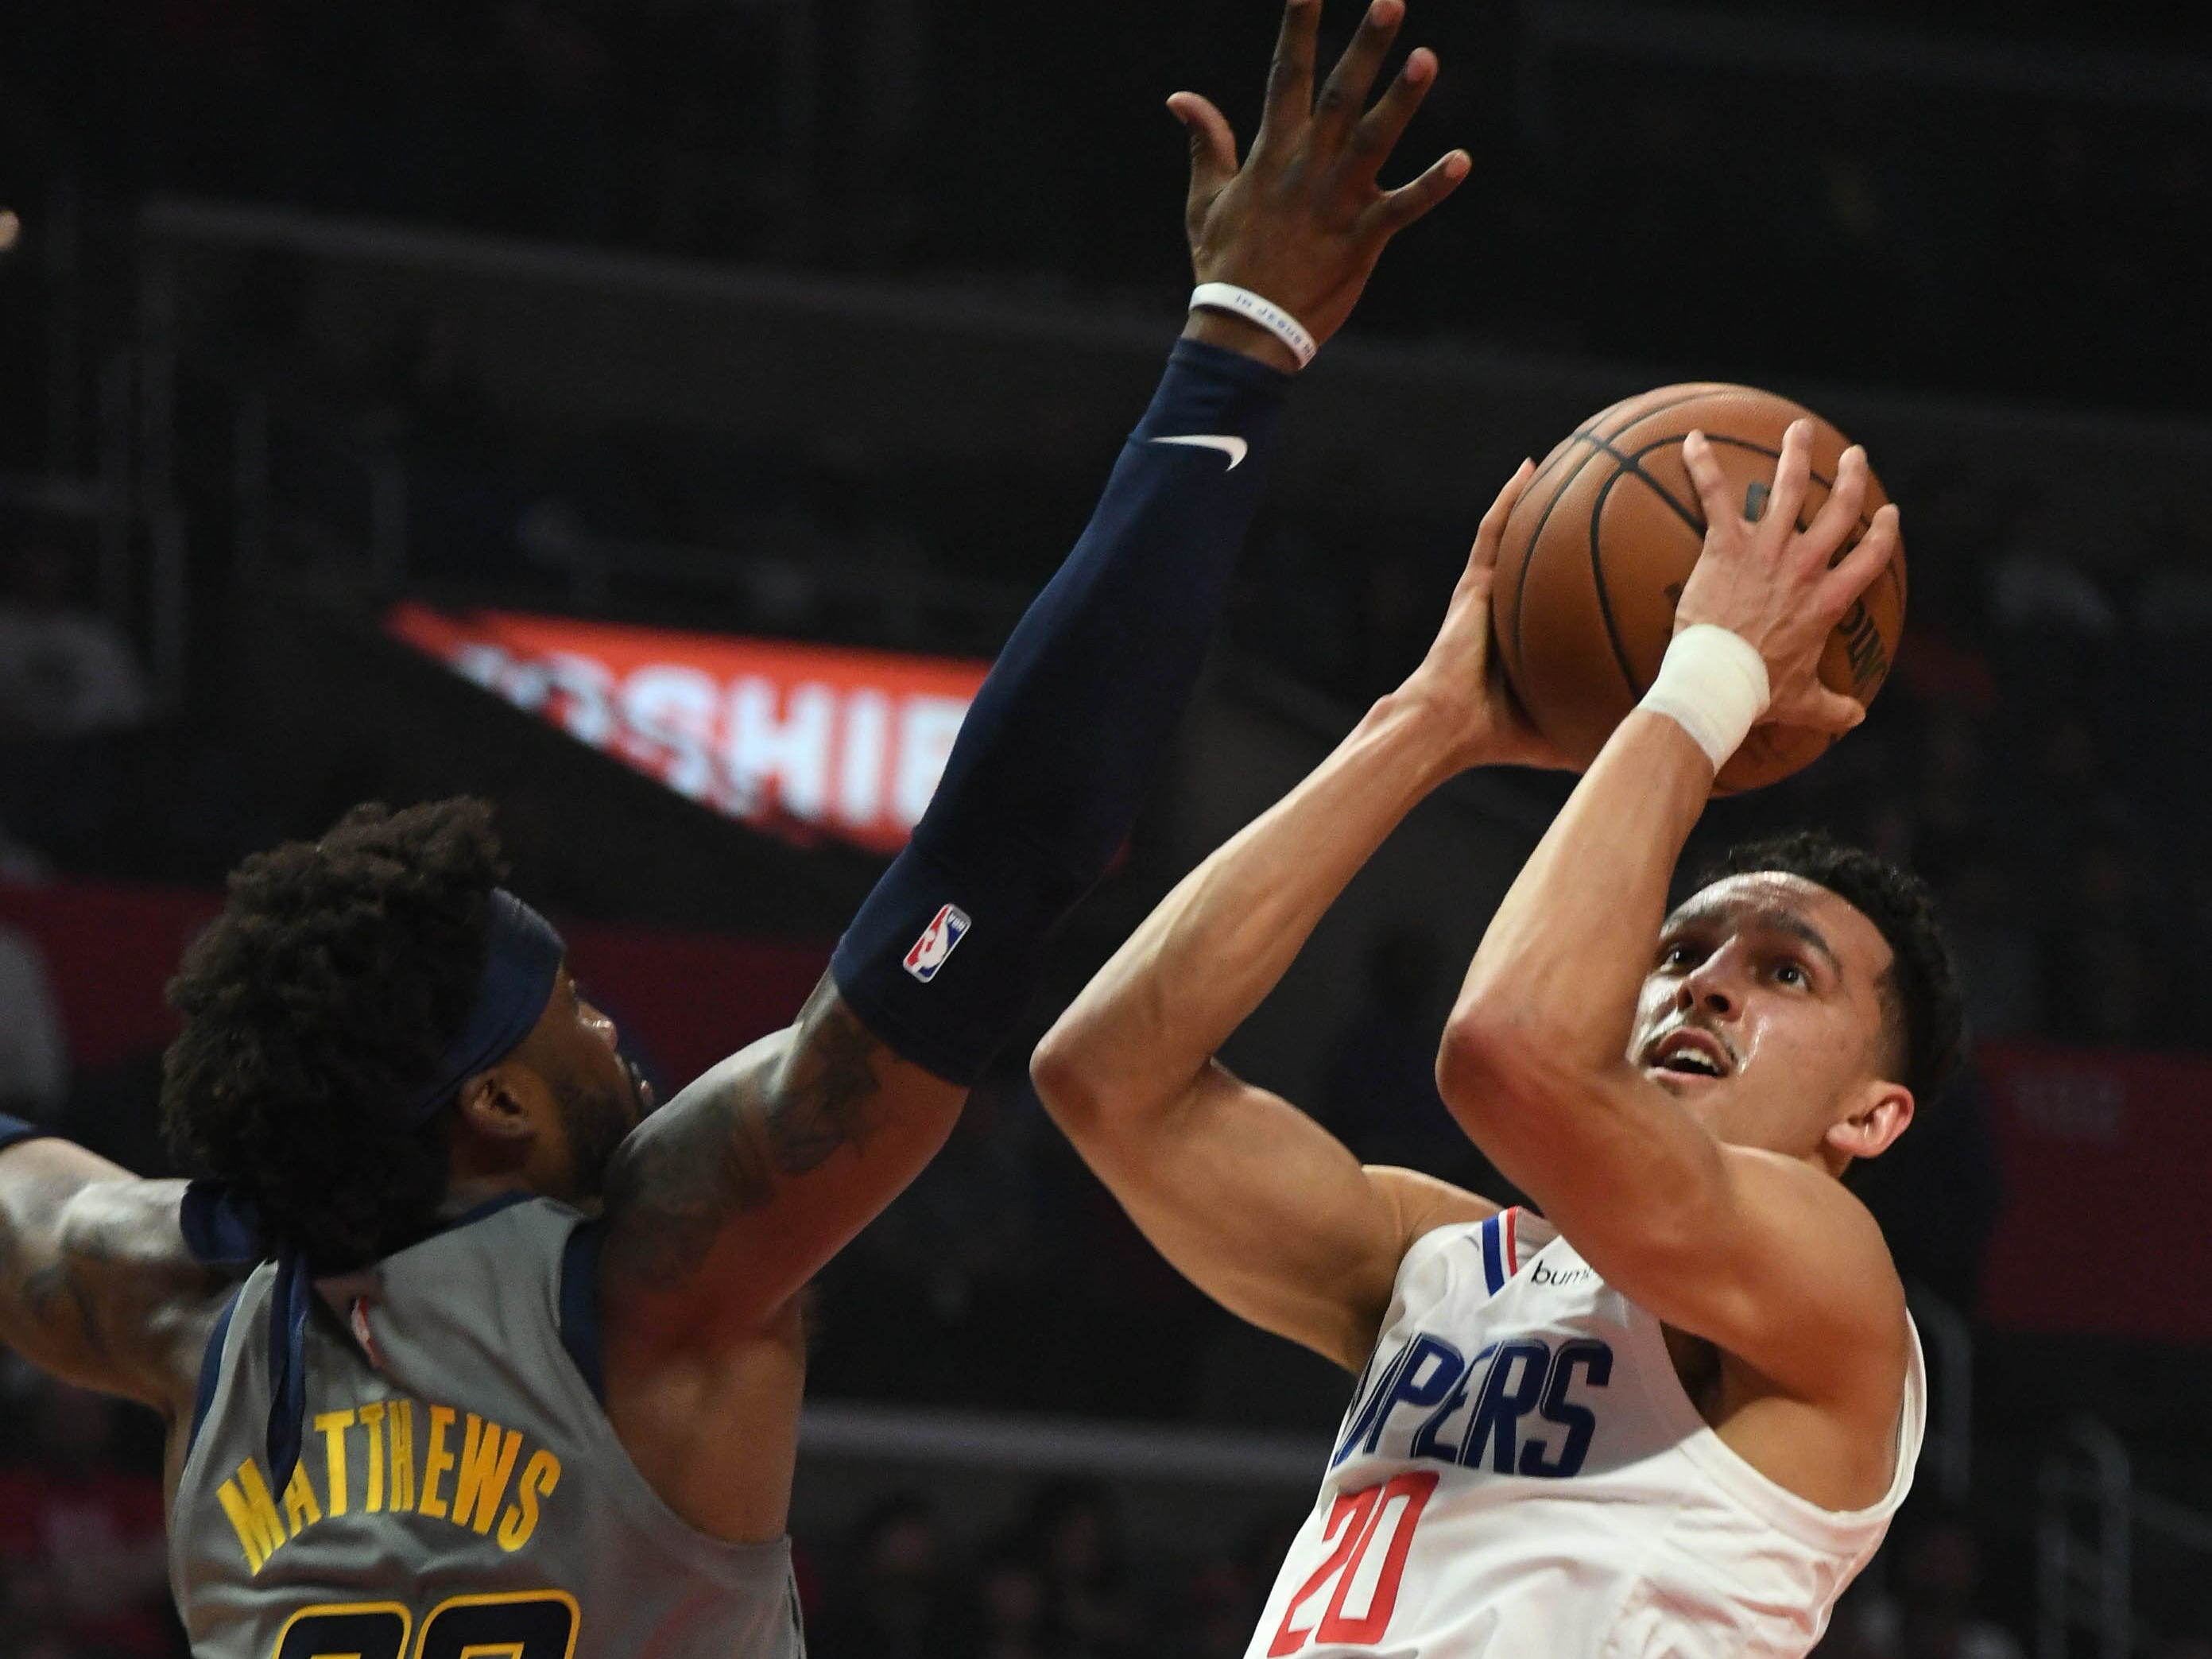 Mar 19, 2019; Los Angeles, CA, USA;  LA Clippers guard Landry Shamet (20) shoots over Indiana Pacers guard Wesley Matthews (23) in the first half at the Staples Center.